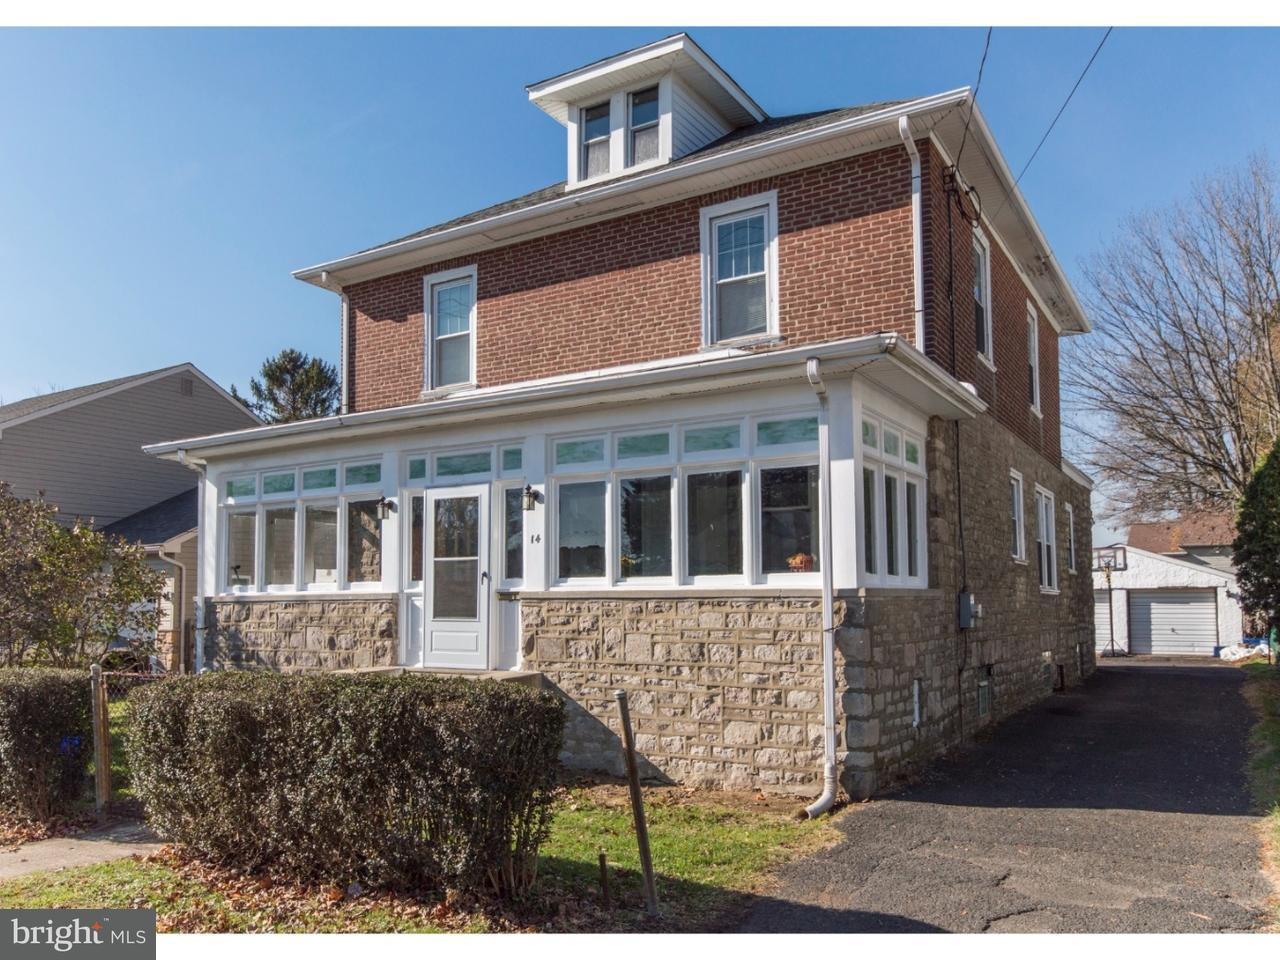 Single Family Home for Sale at 14 DALLAS Road Willow Grove, Pennsylvania 19090 United States